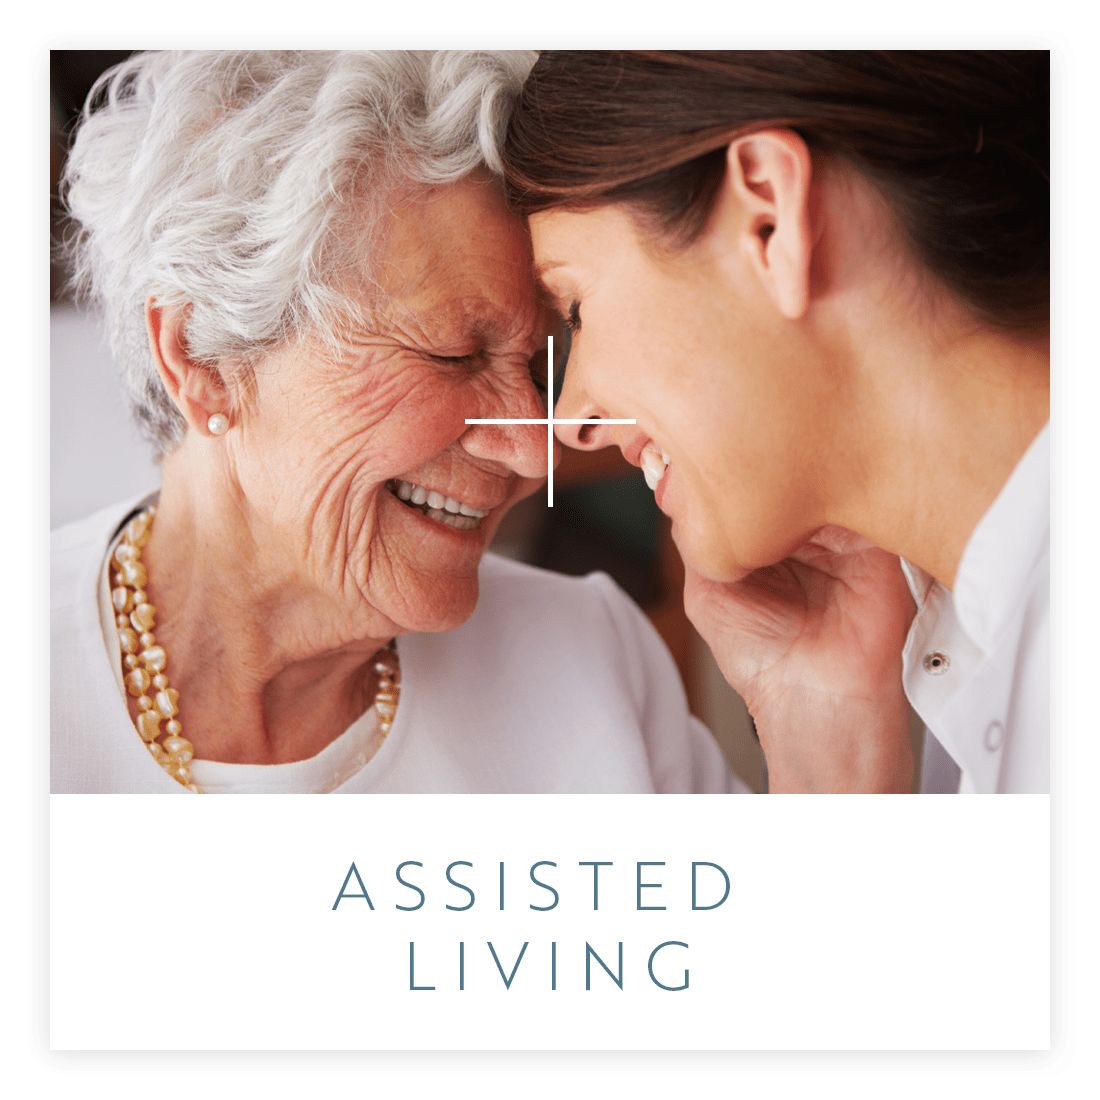 View our Assisted Living services at The Meridian at Brandon in Tampa, Florida